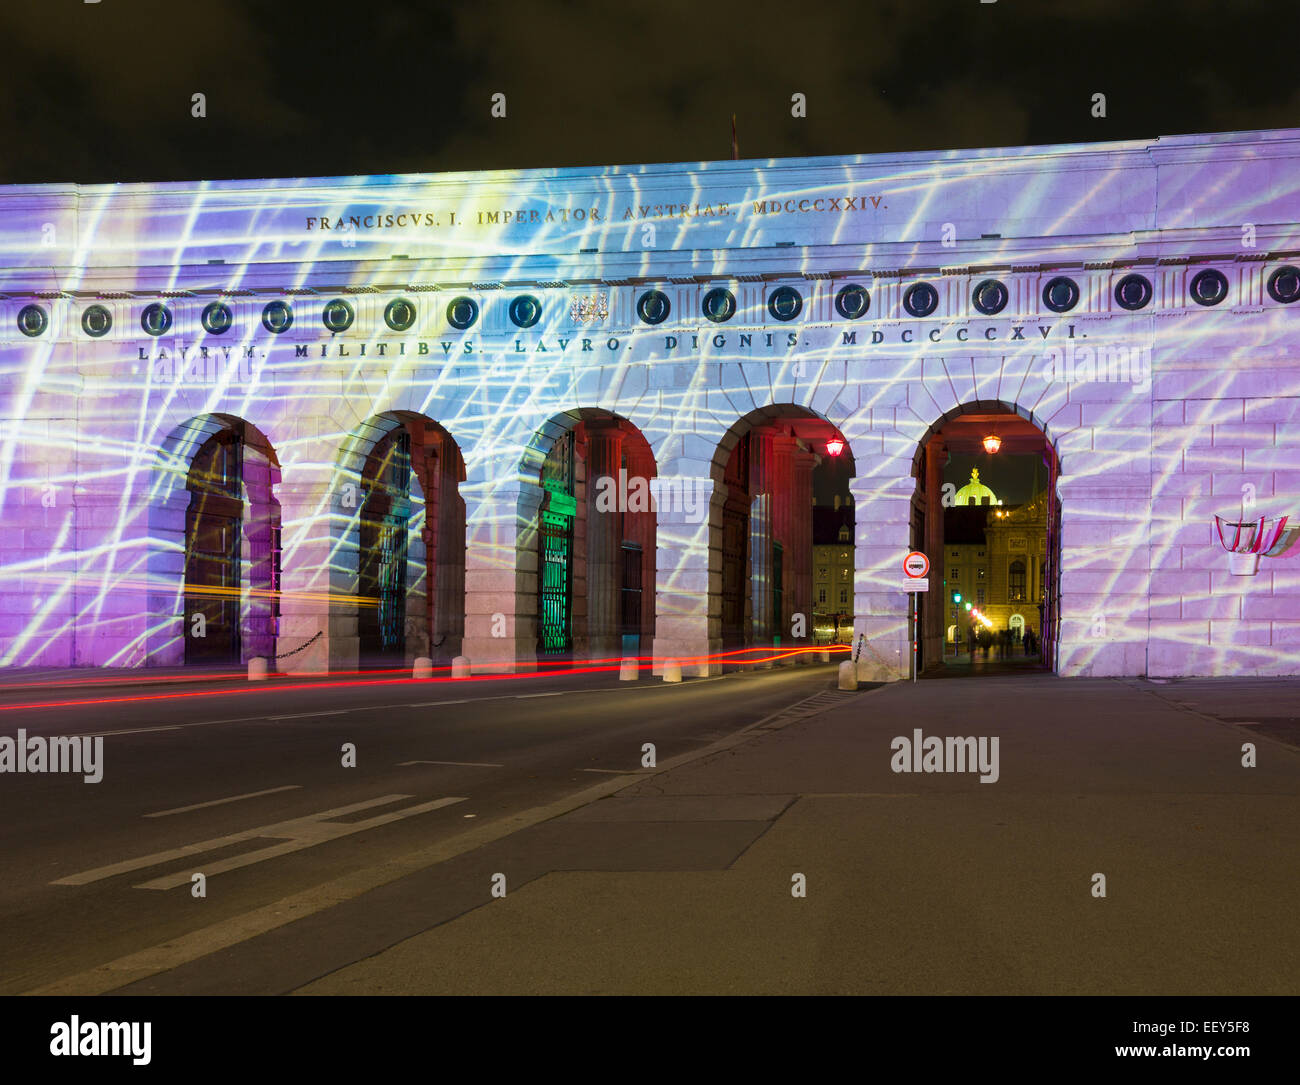 Light show on the ancient outer castle gate and arches in Heldenplatz, Vienna, Austria - Stock Image